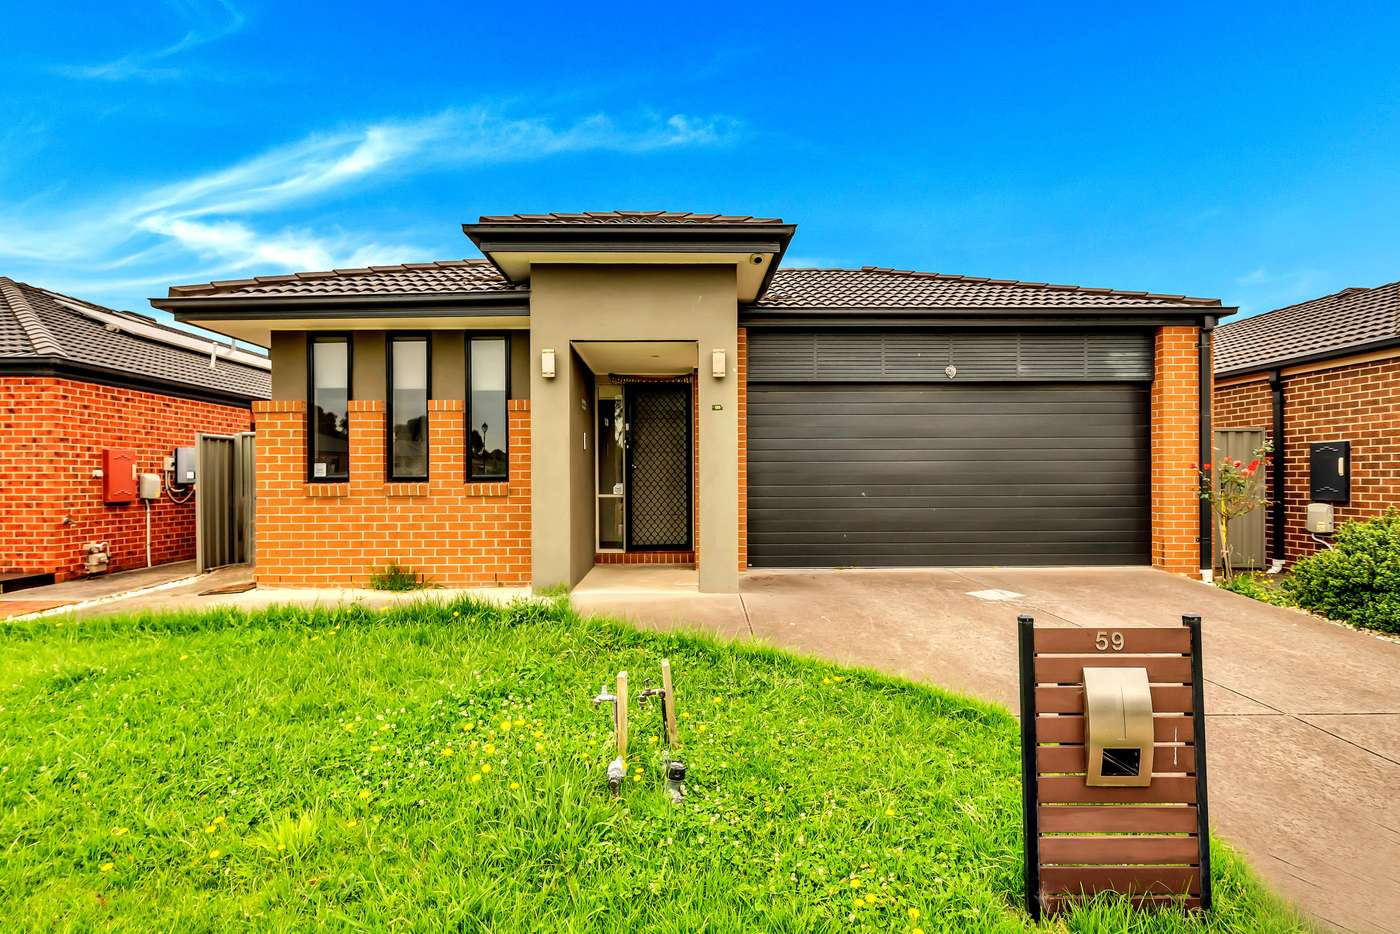 Main view of Homely house listing, 59 Challenger Circuit, Cranbourne East VIC 3977